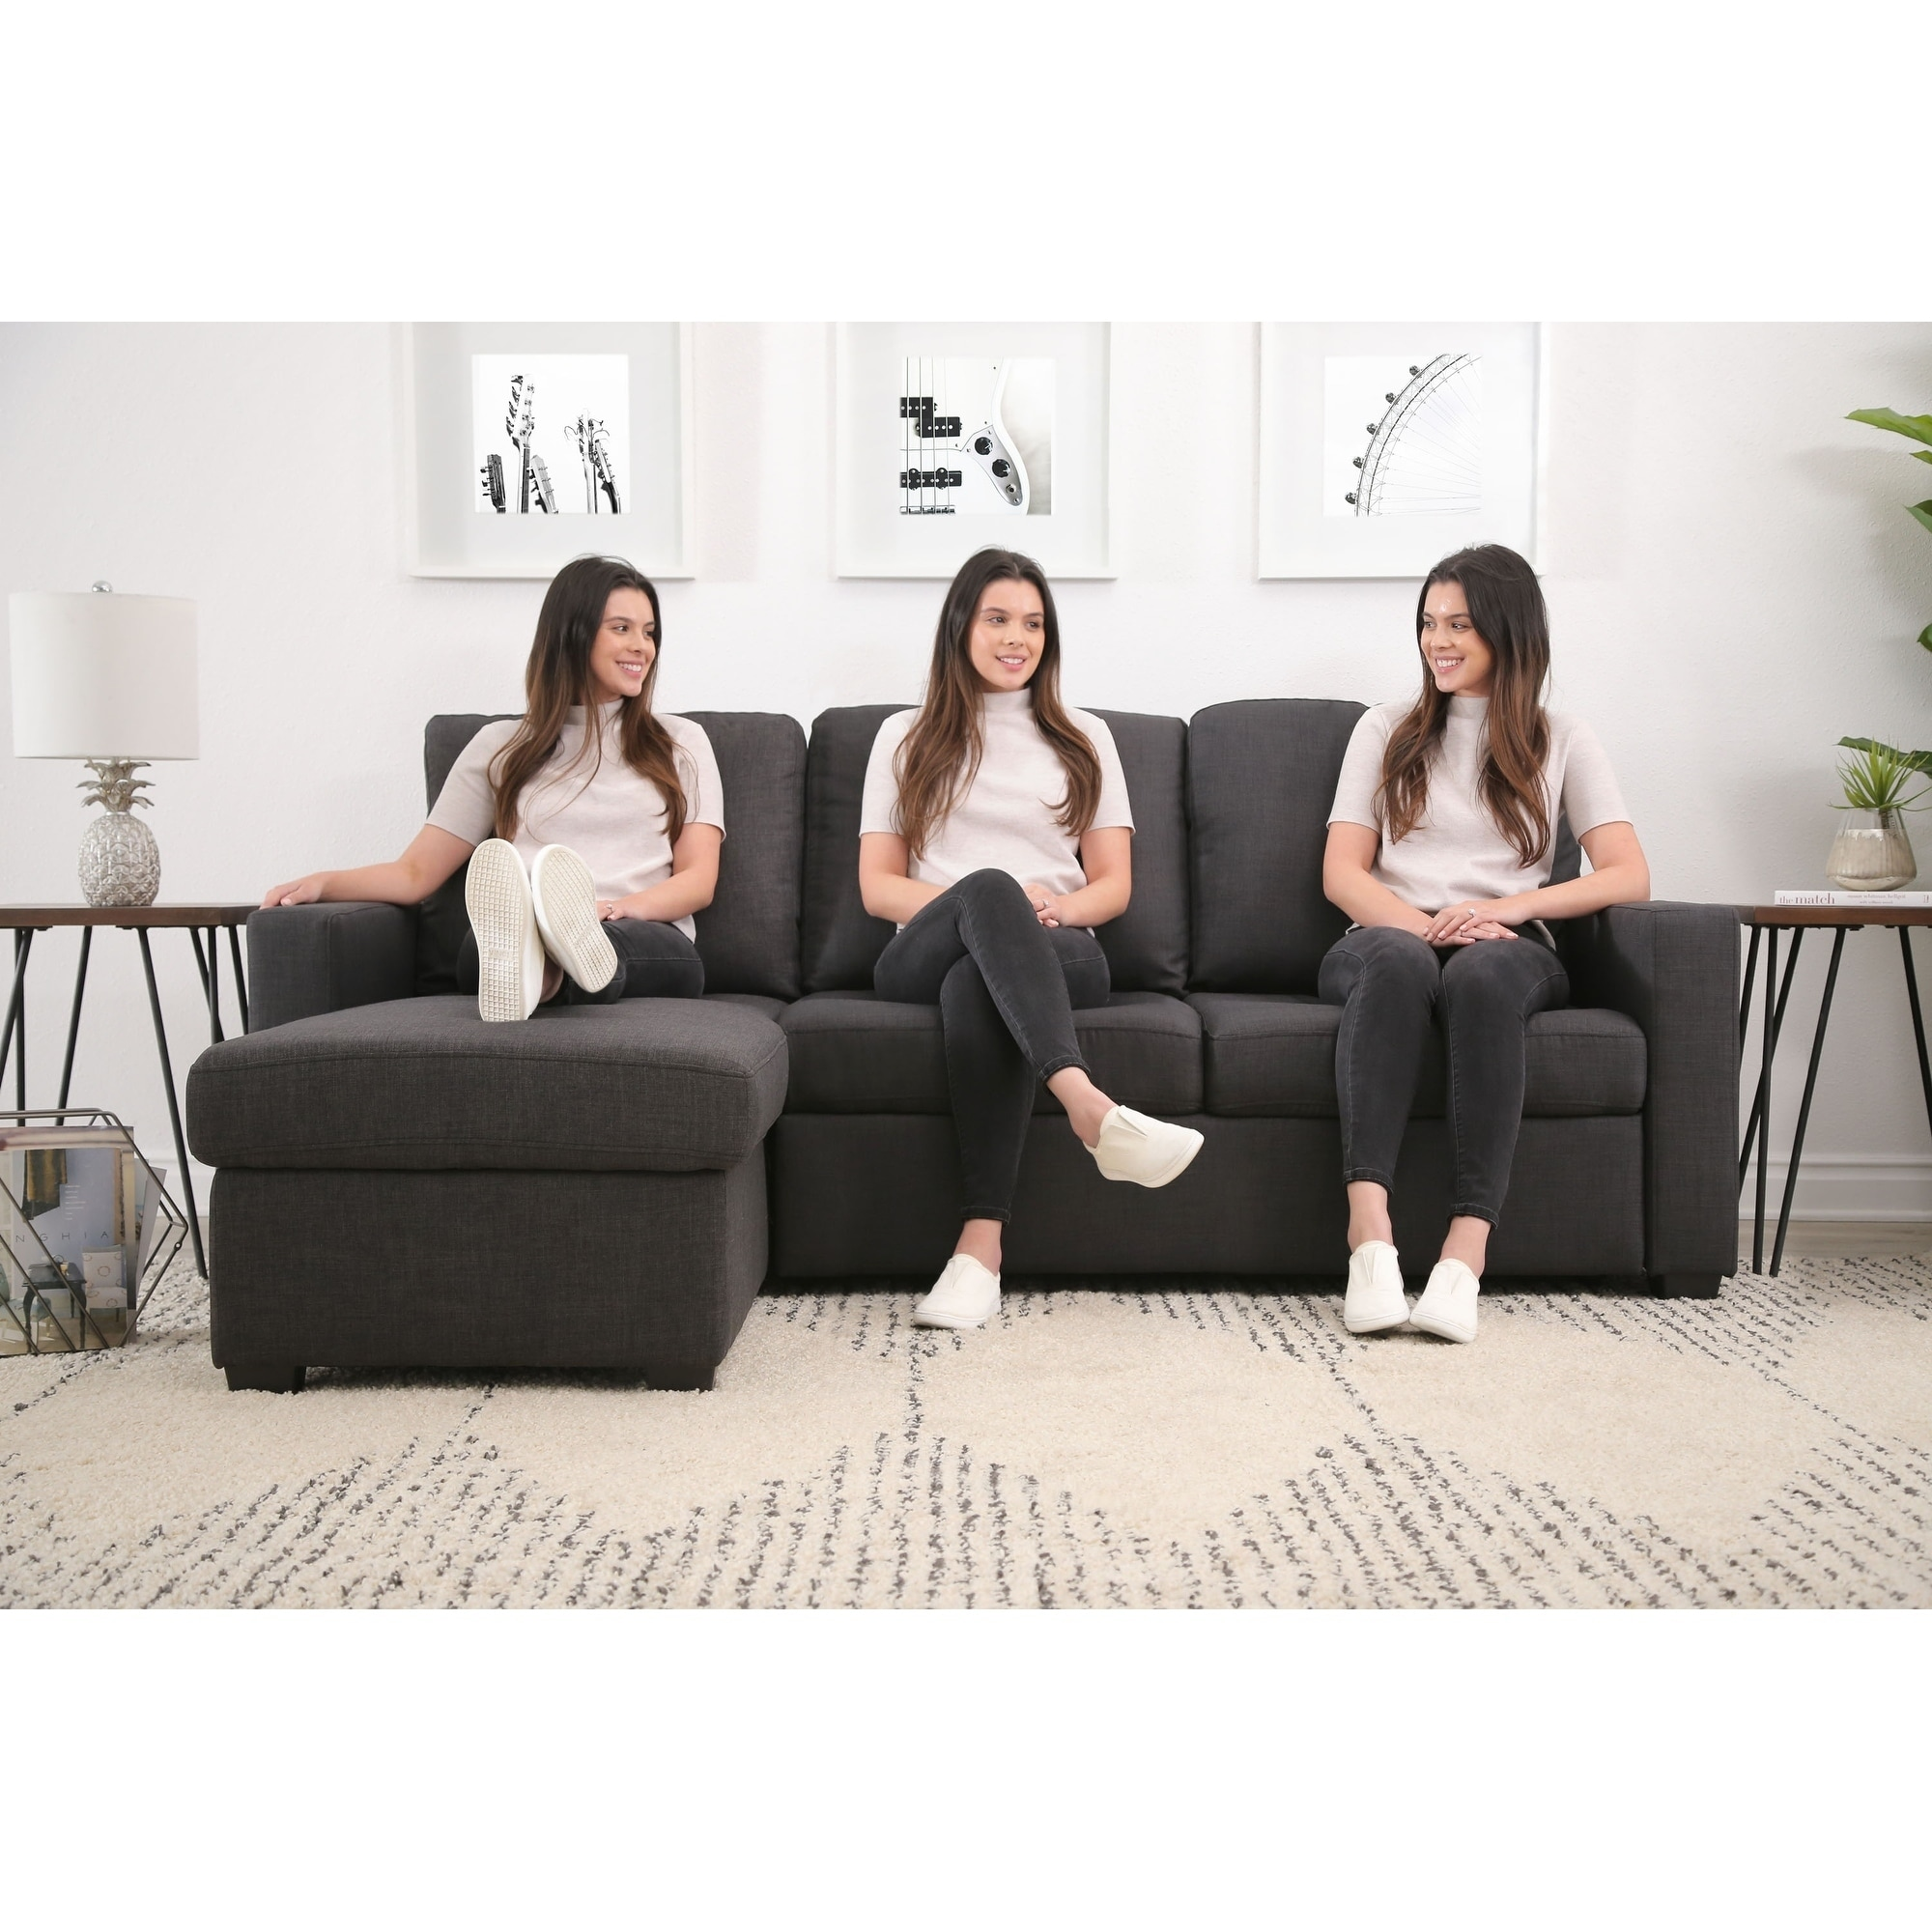 Terrific Abbyson Newport Upholstered Sleeper Sectional With Storage Alphanode Cool Chair Designs And Ideas Alphanodeonline